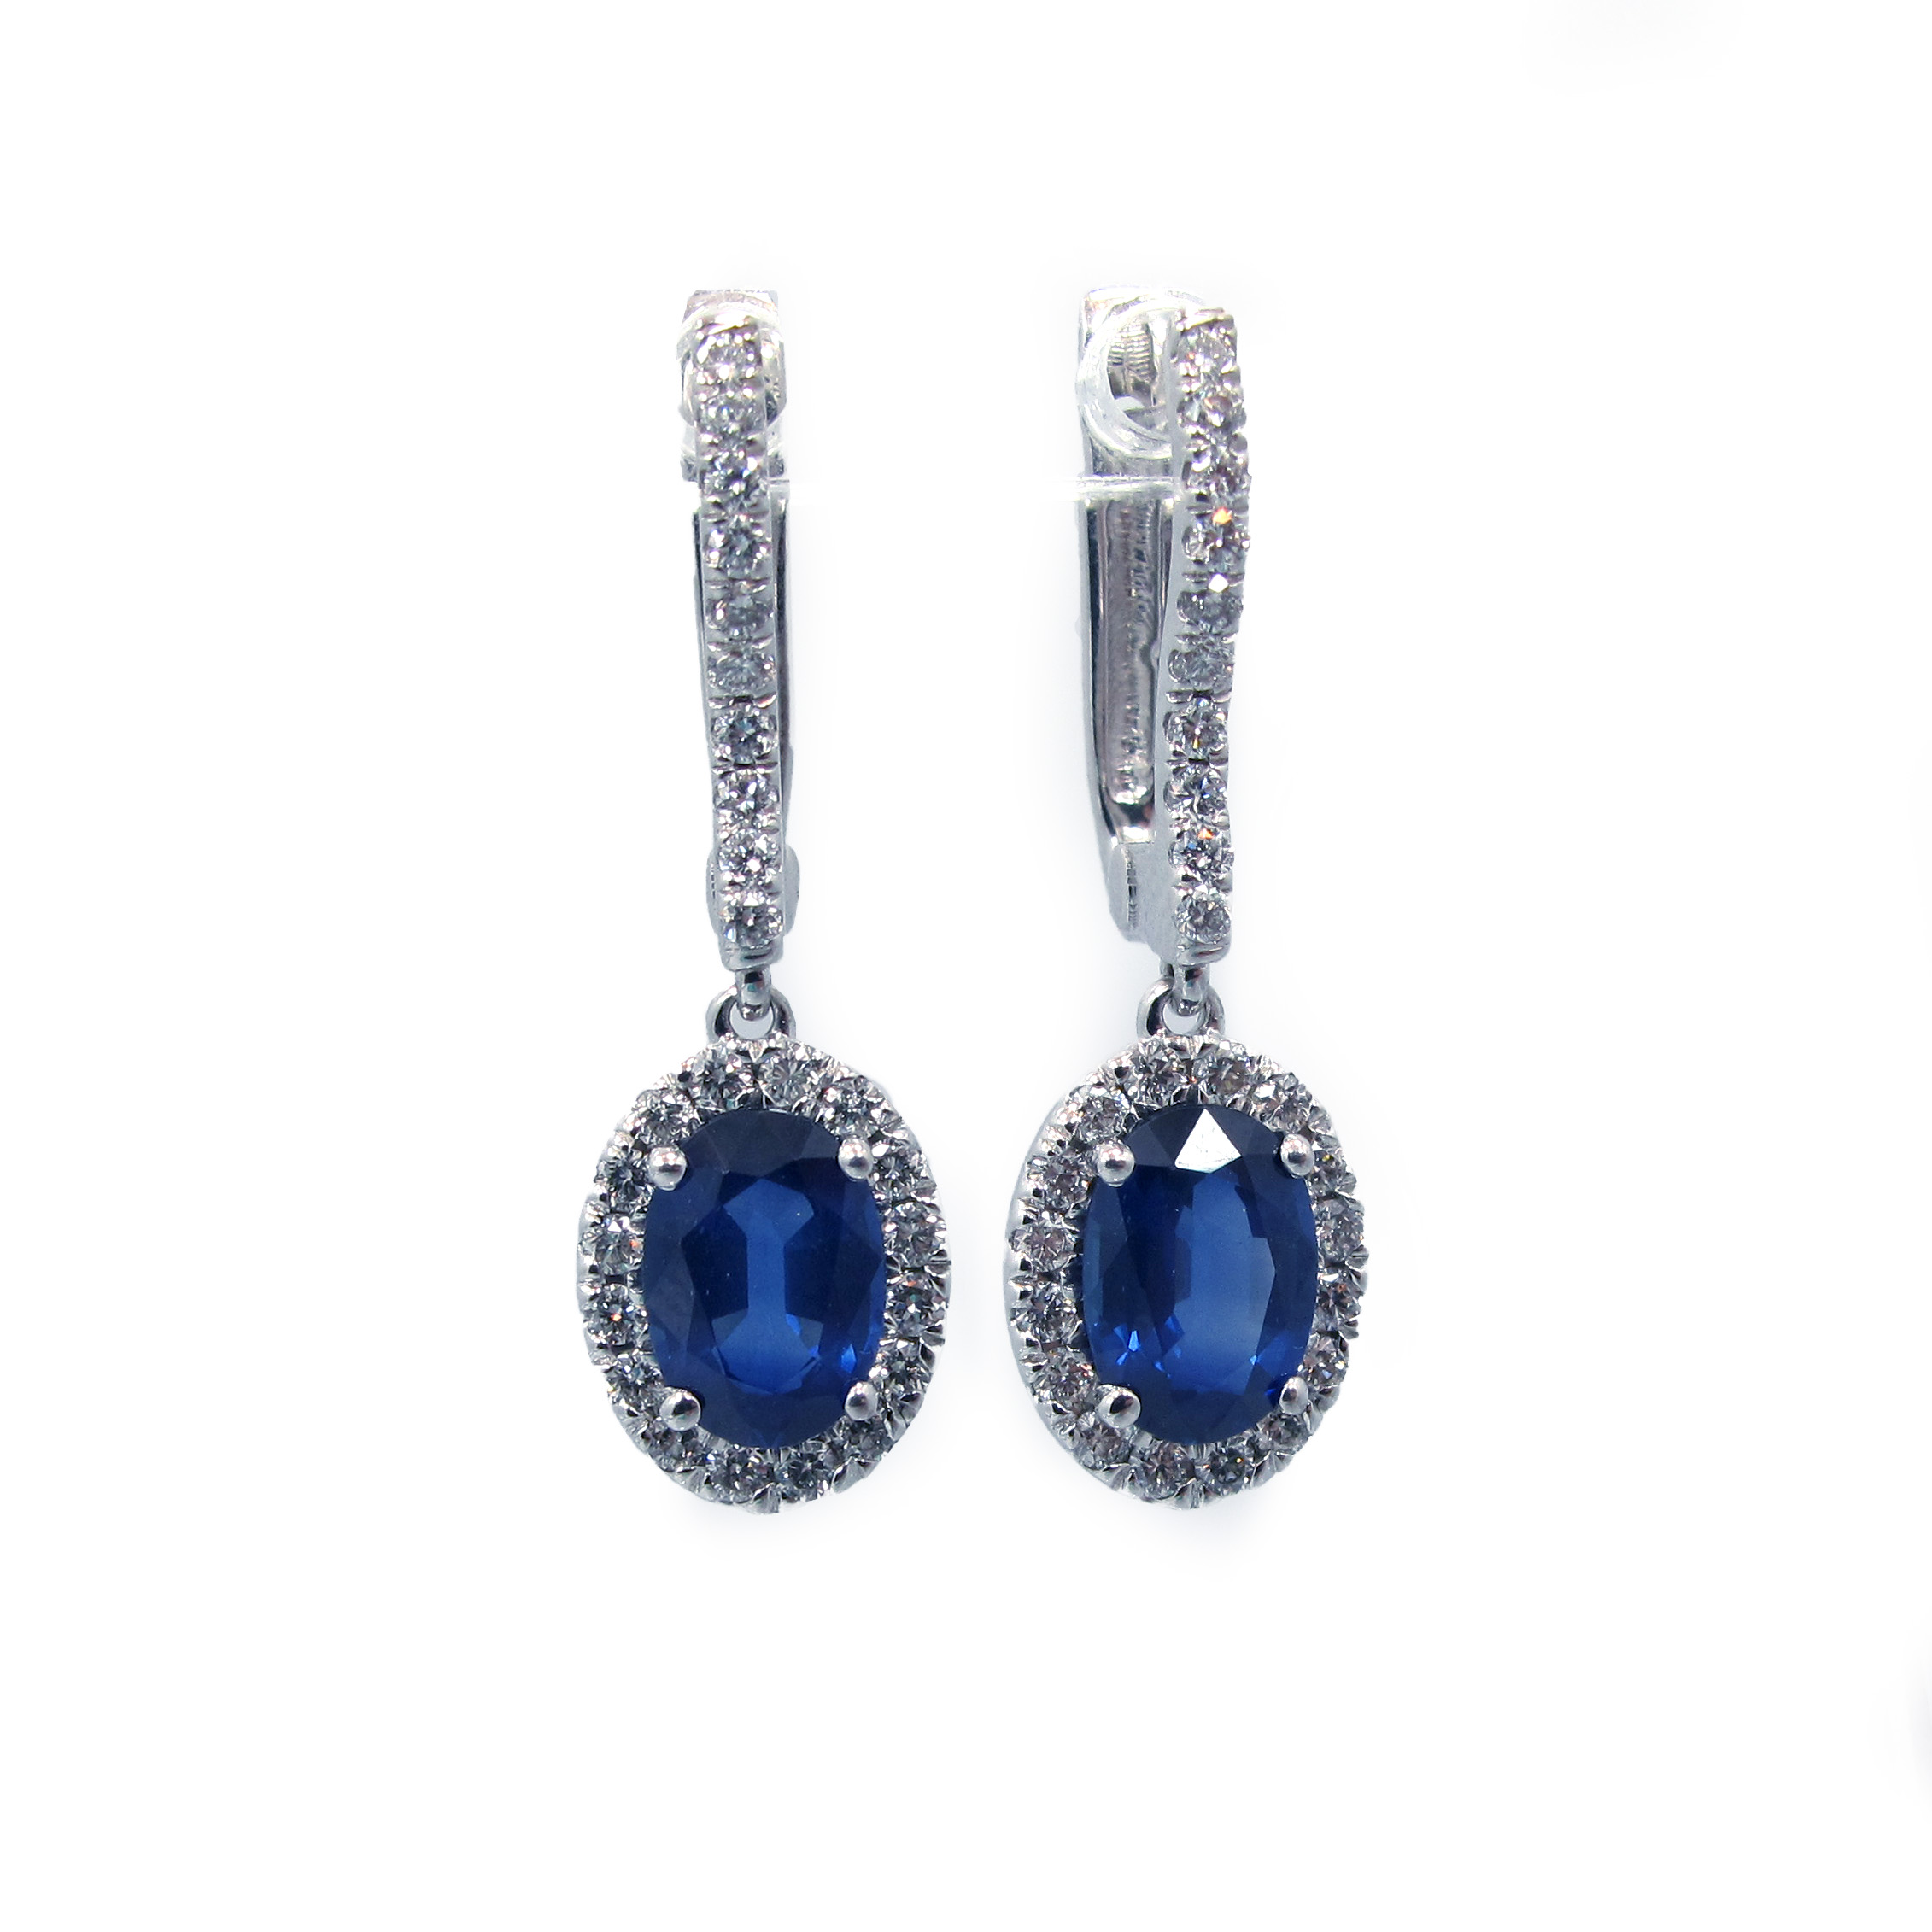 antiques epoque products butter poque halo lane belle leverback diamond earrings